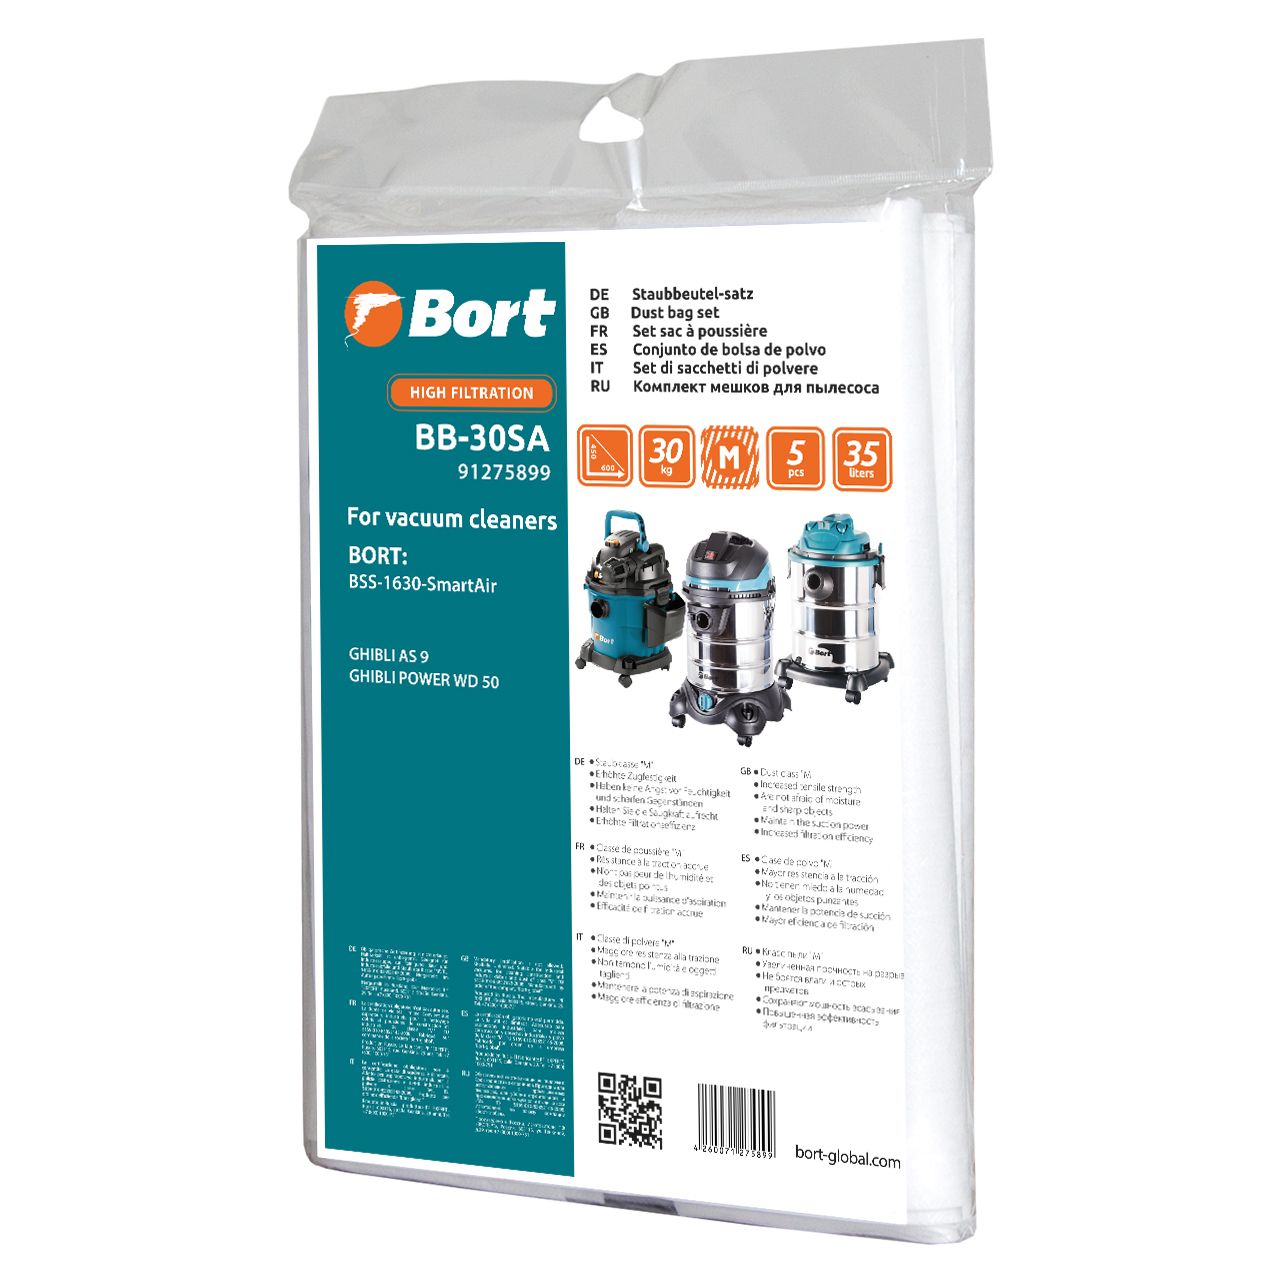 Kit bags пылесборных for vacuum cleaner Bort BB-30SA (Volume 35 L, 5 pcs, suitable for BSS-1630-SmartAir) цена и фото